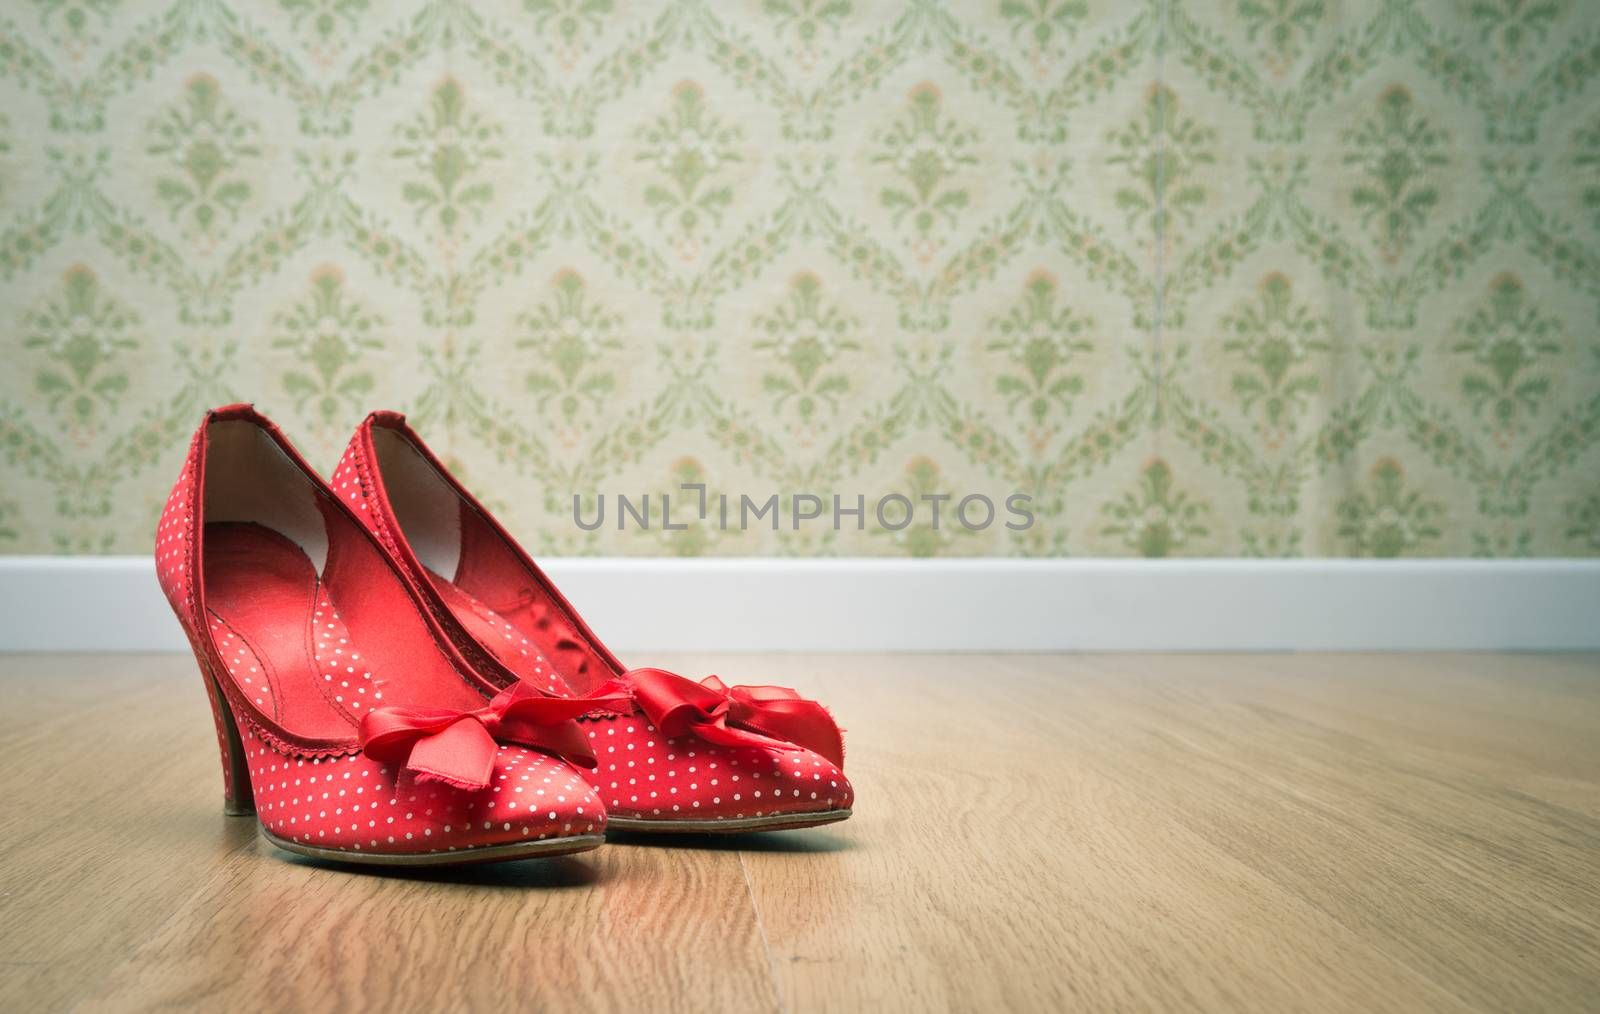 Vintage red dotted female shoes with ribbon on hardwood floor with retro wallpaper on background.